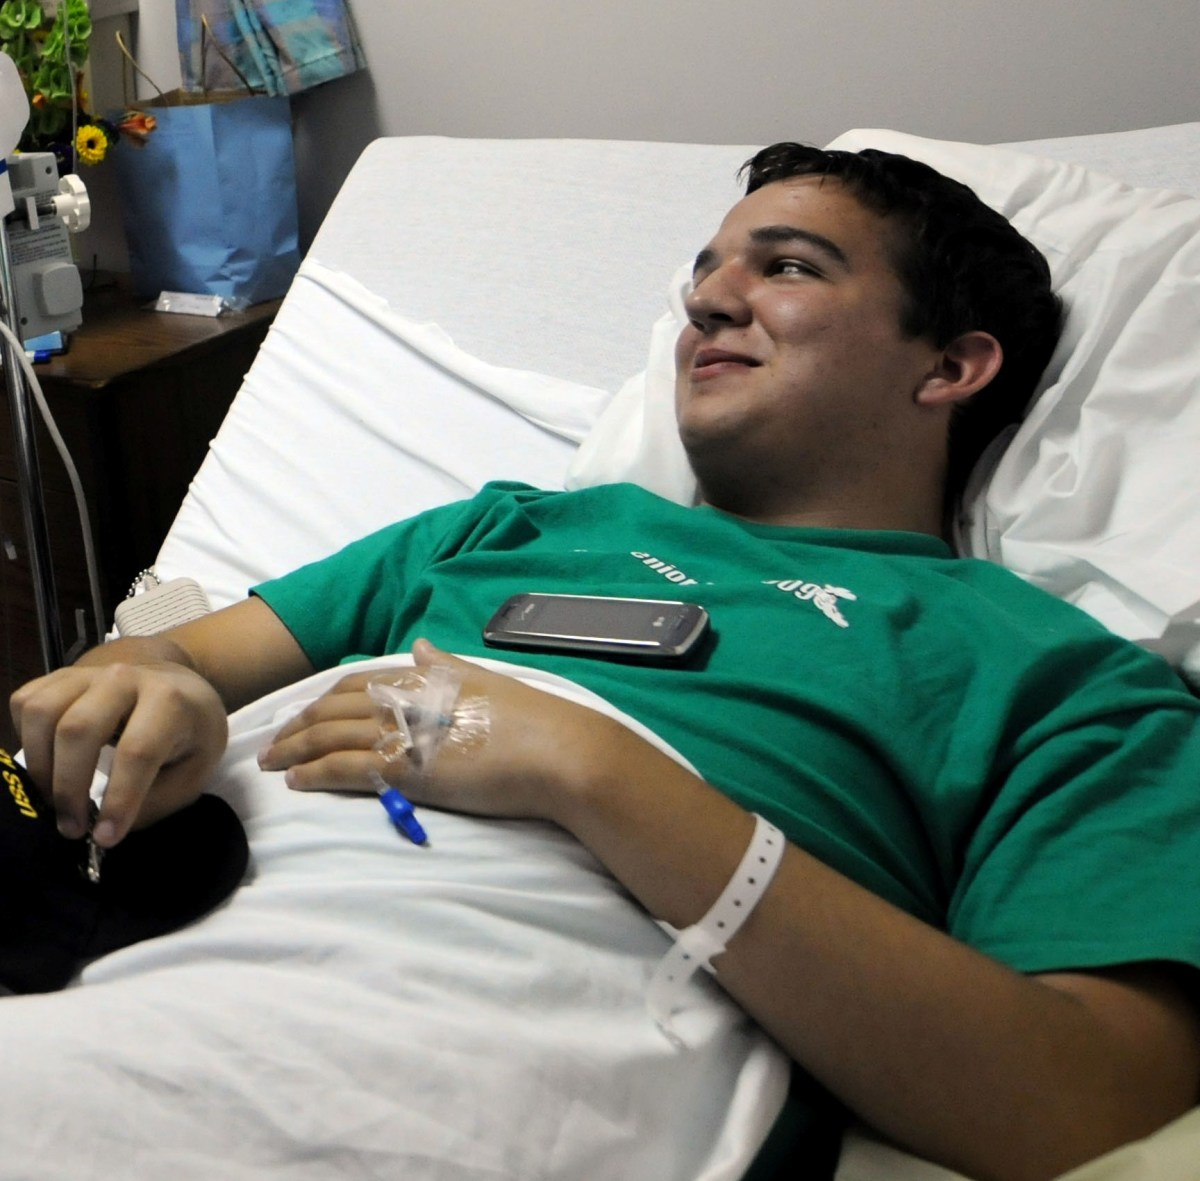 gallbladder-surgery-recovery-time